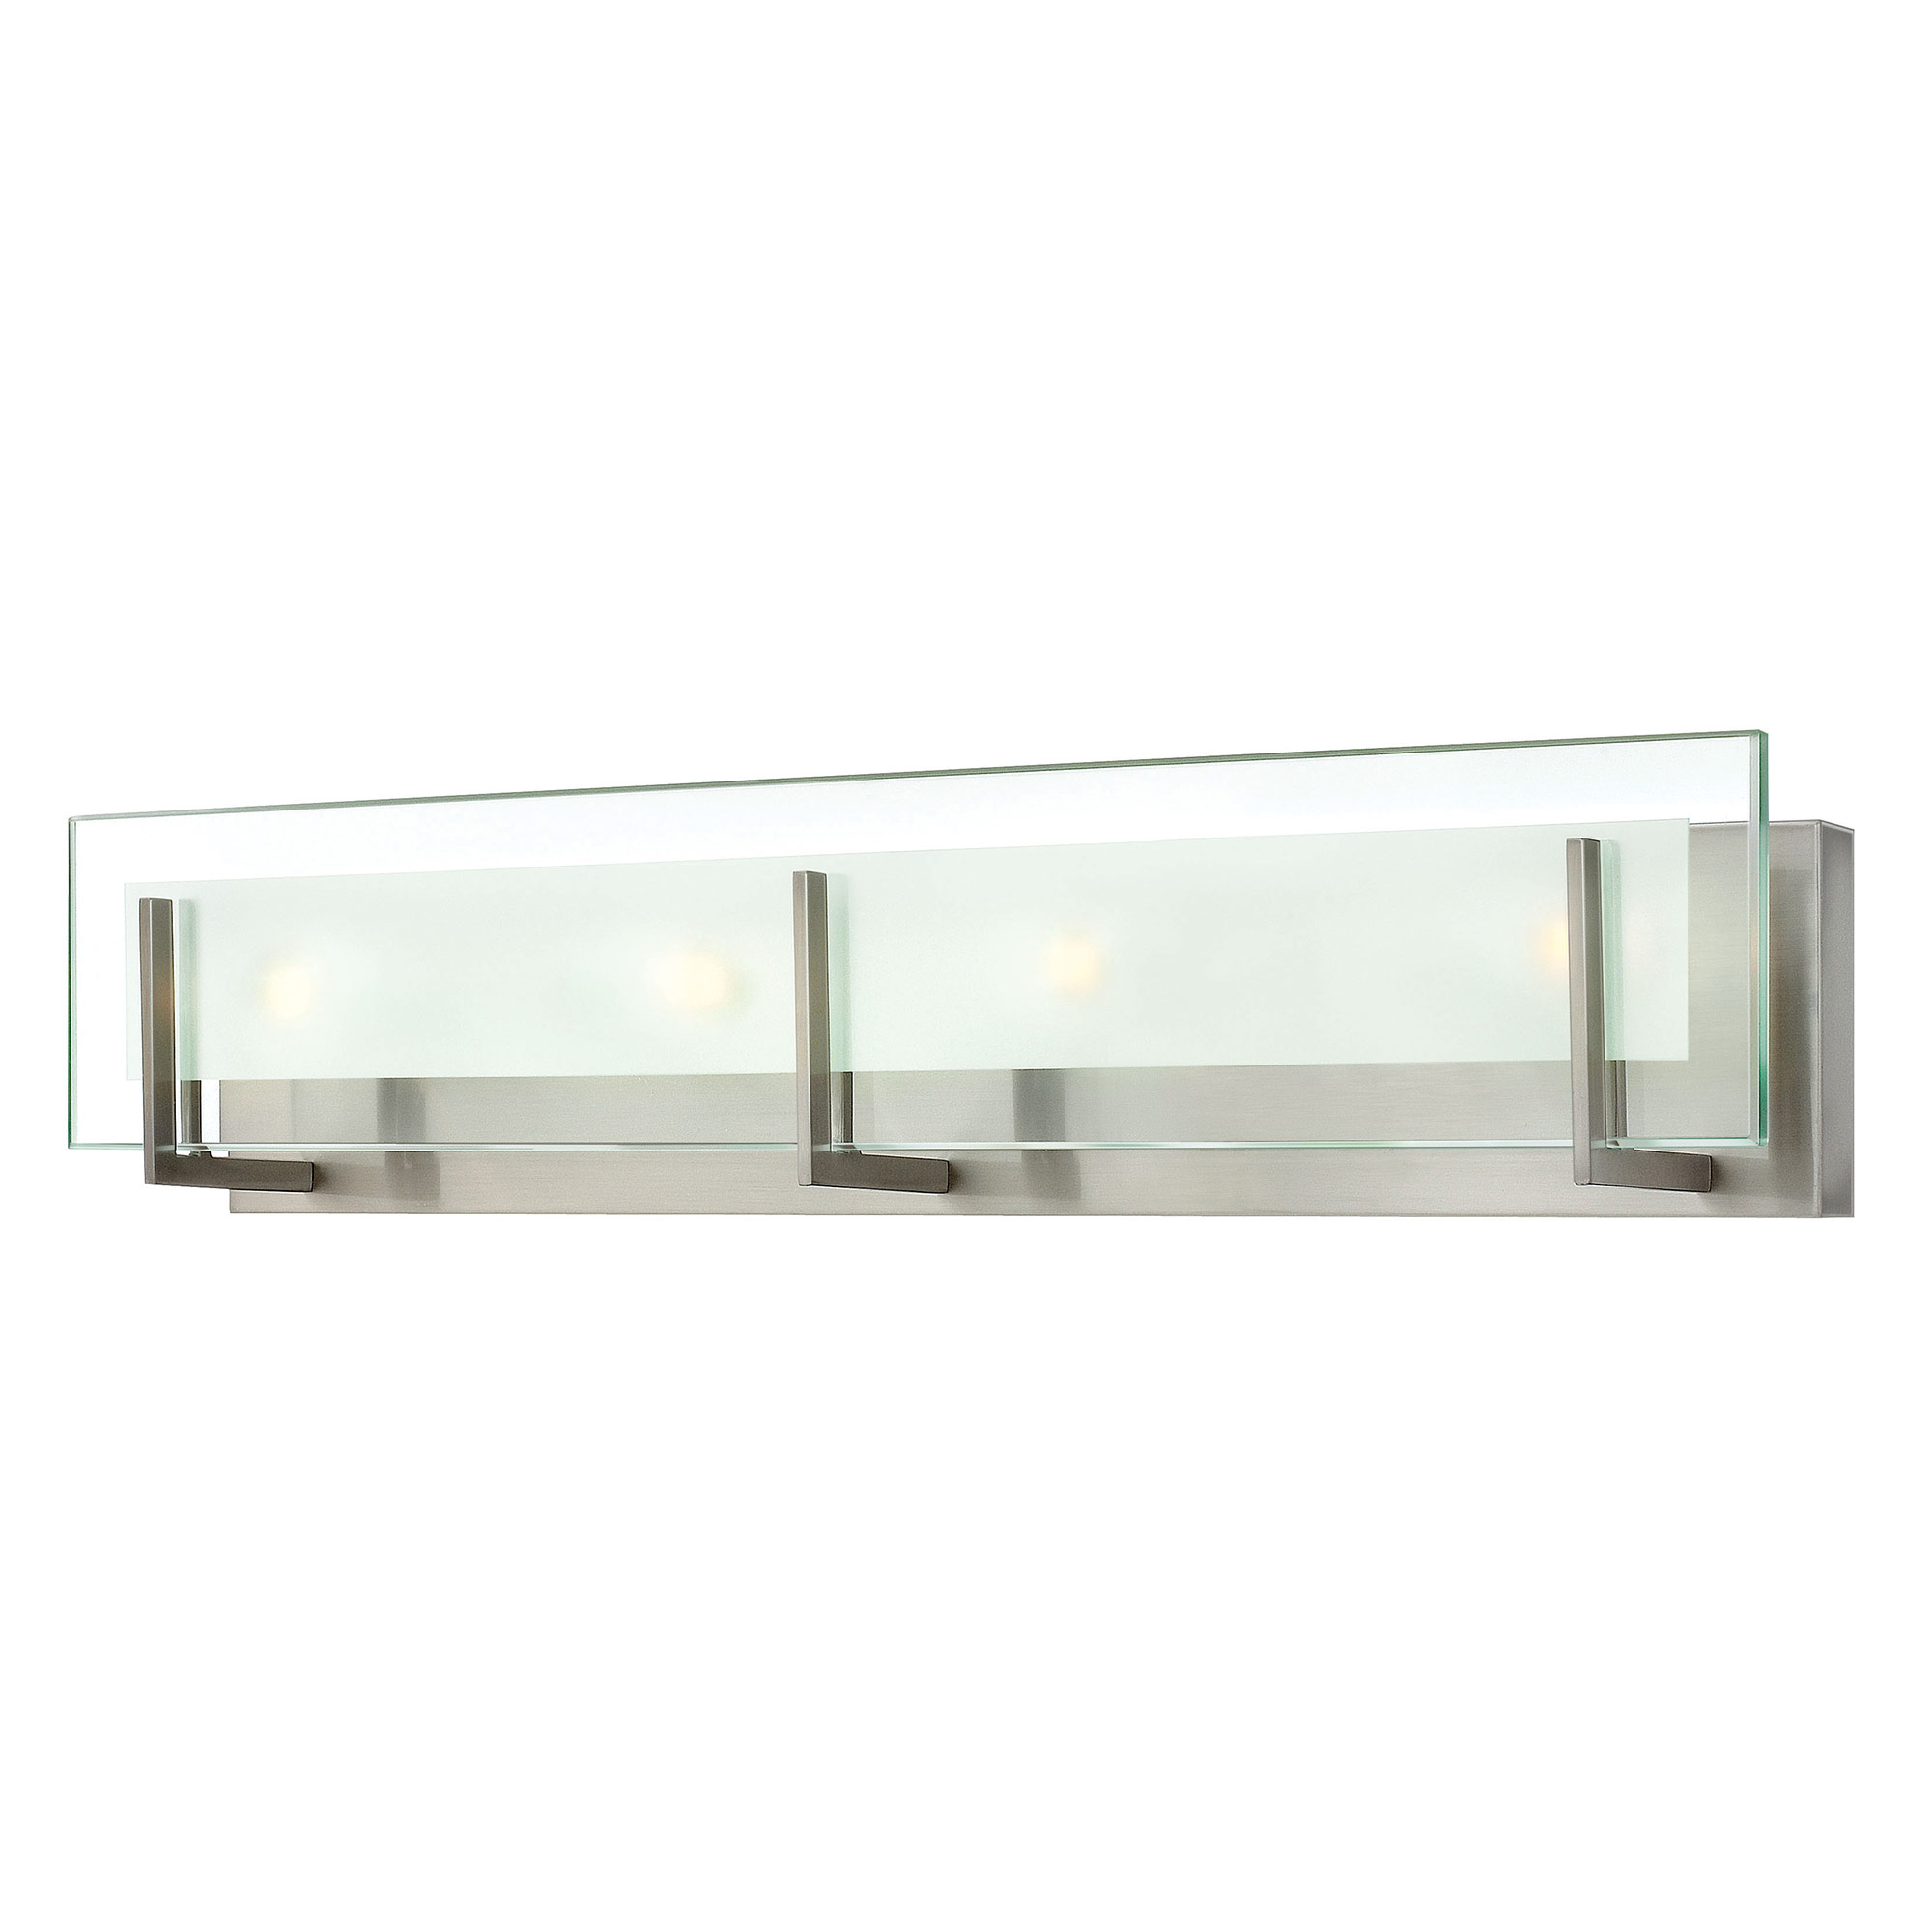 Latitude bathroom vanity light by hinkley lighting 5654bn - Images of bathroom vanity lighting ...